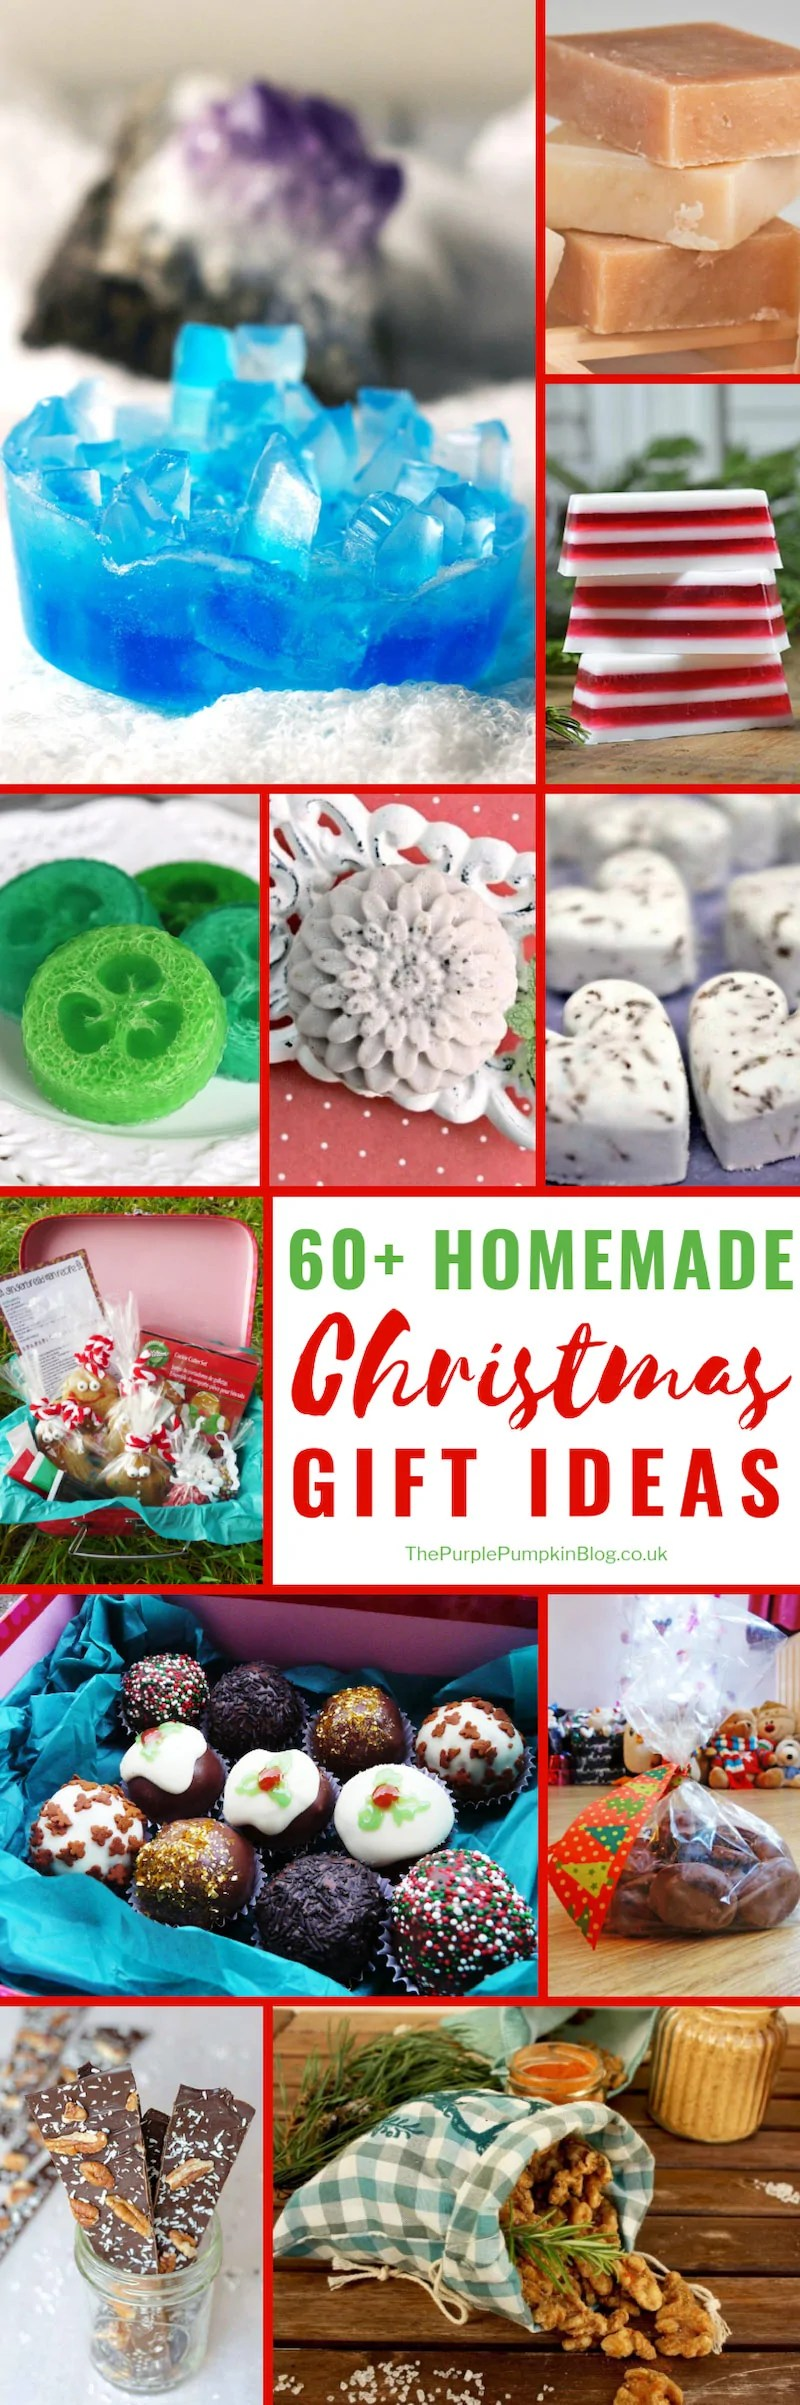 60+ Homemade Christmas Gifts that are perfect if you want to add a personal touch to your Christmas gifting. Included in this list of ideas and inspiration for homemade Christmas gifts are recipes which you can package into gift baskets, as well as homemade pamper products, sewing, and crochet projects, and more!